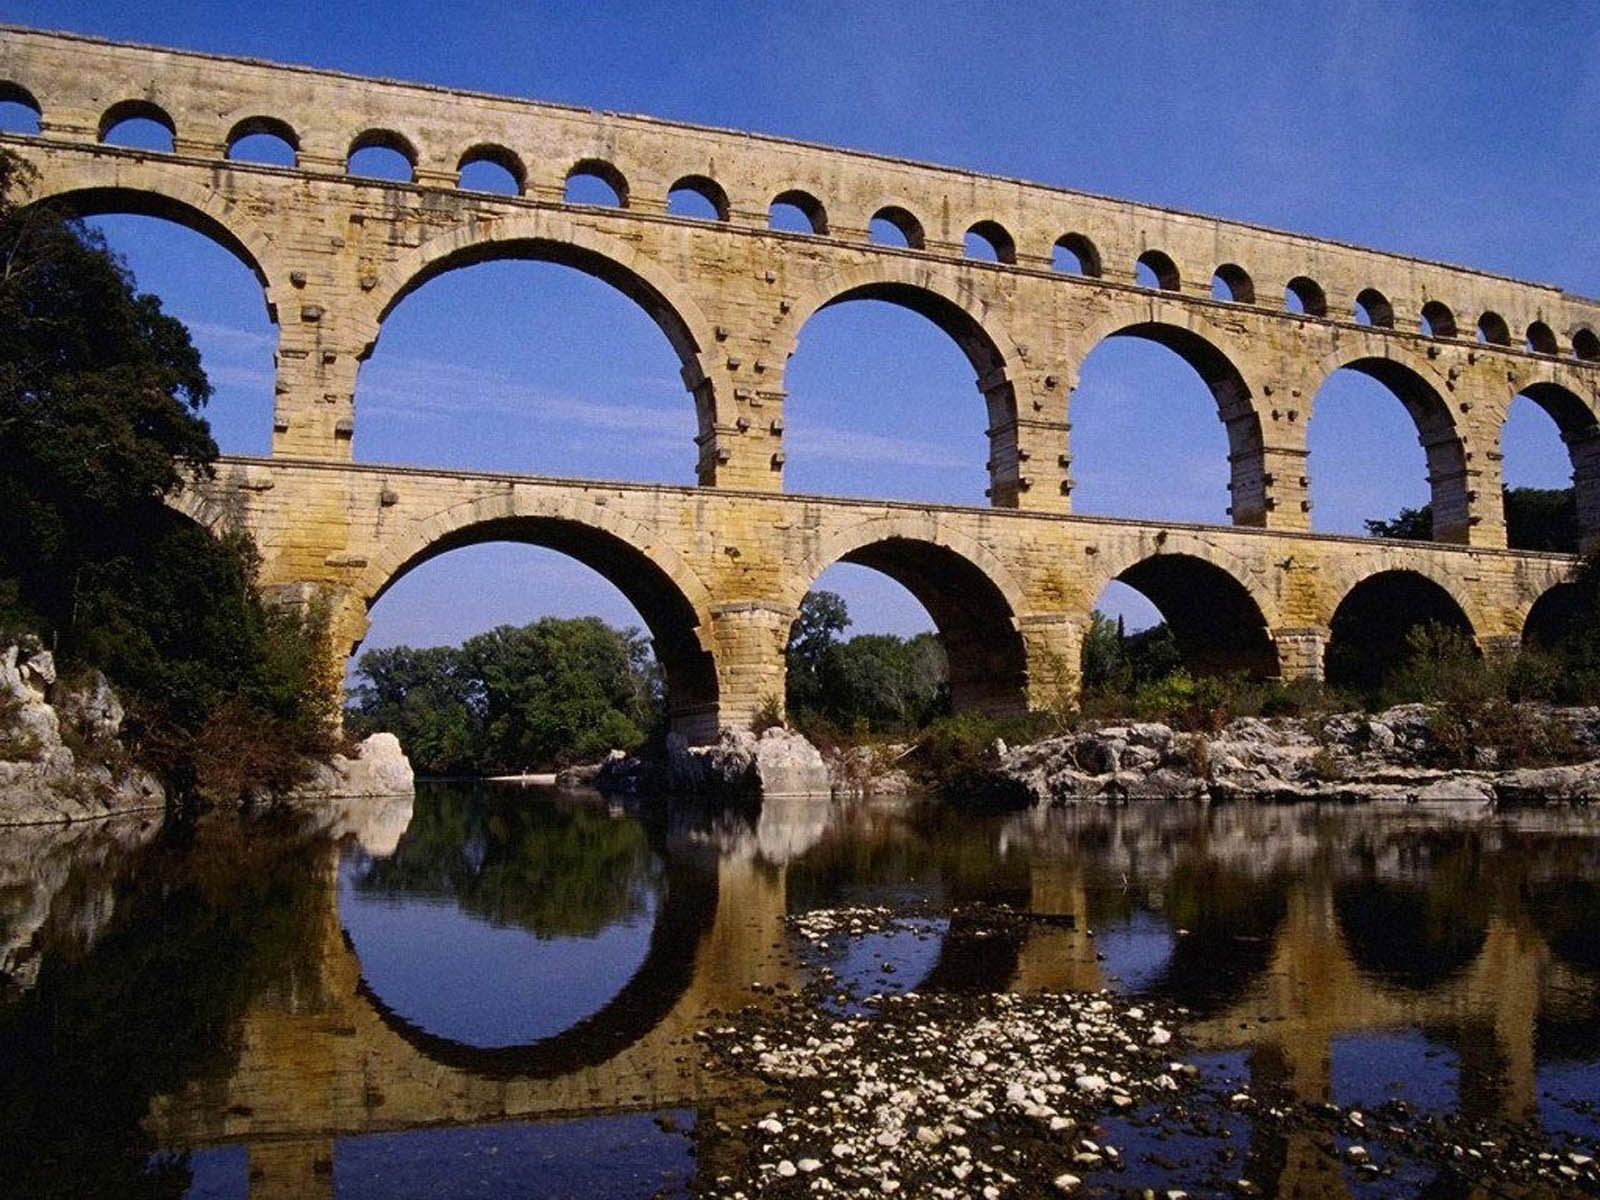 Wallpapers pont du gard roman aqueduct for Pont du gard architecte